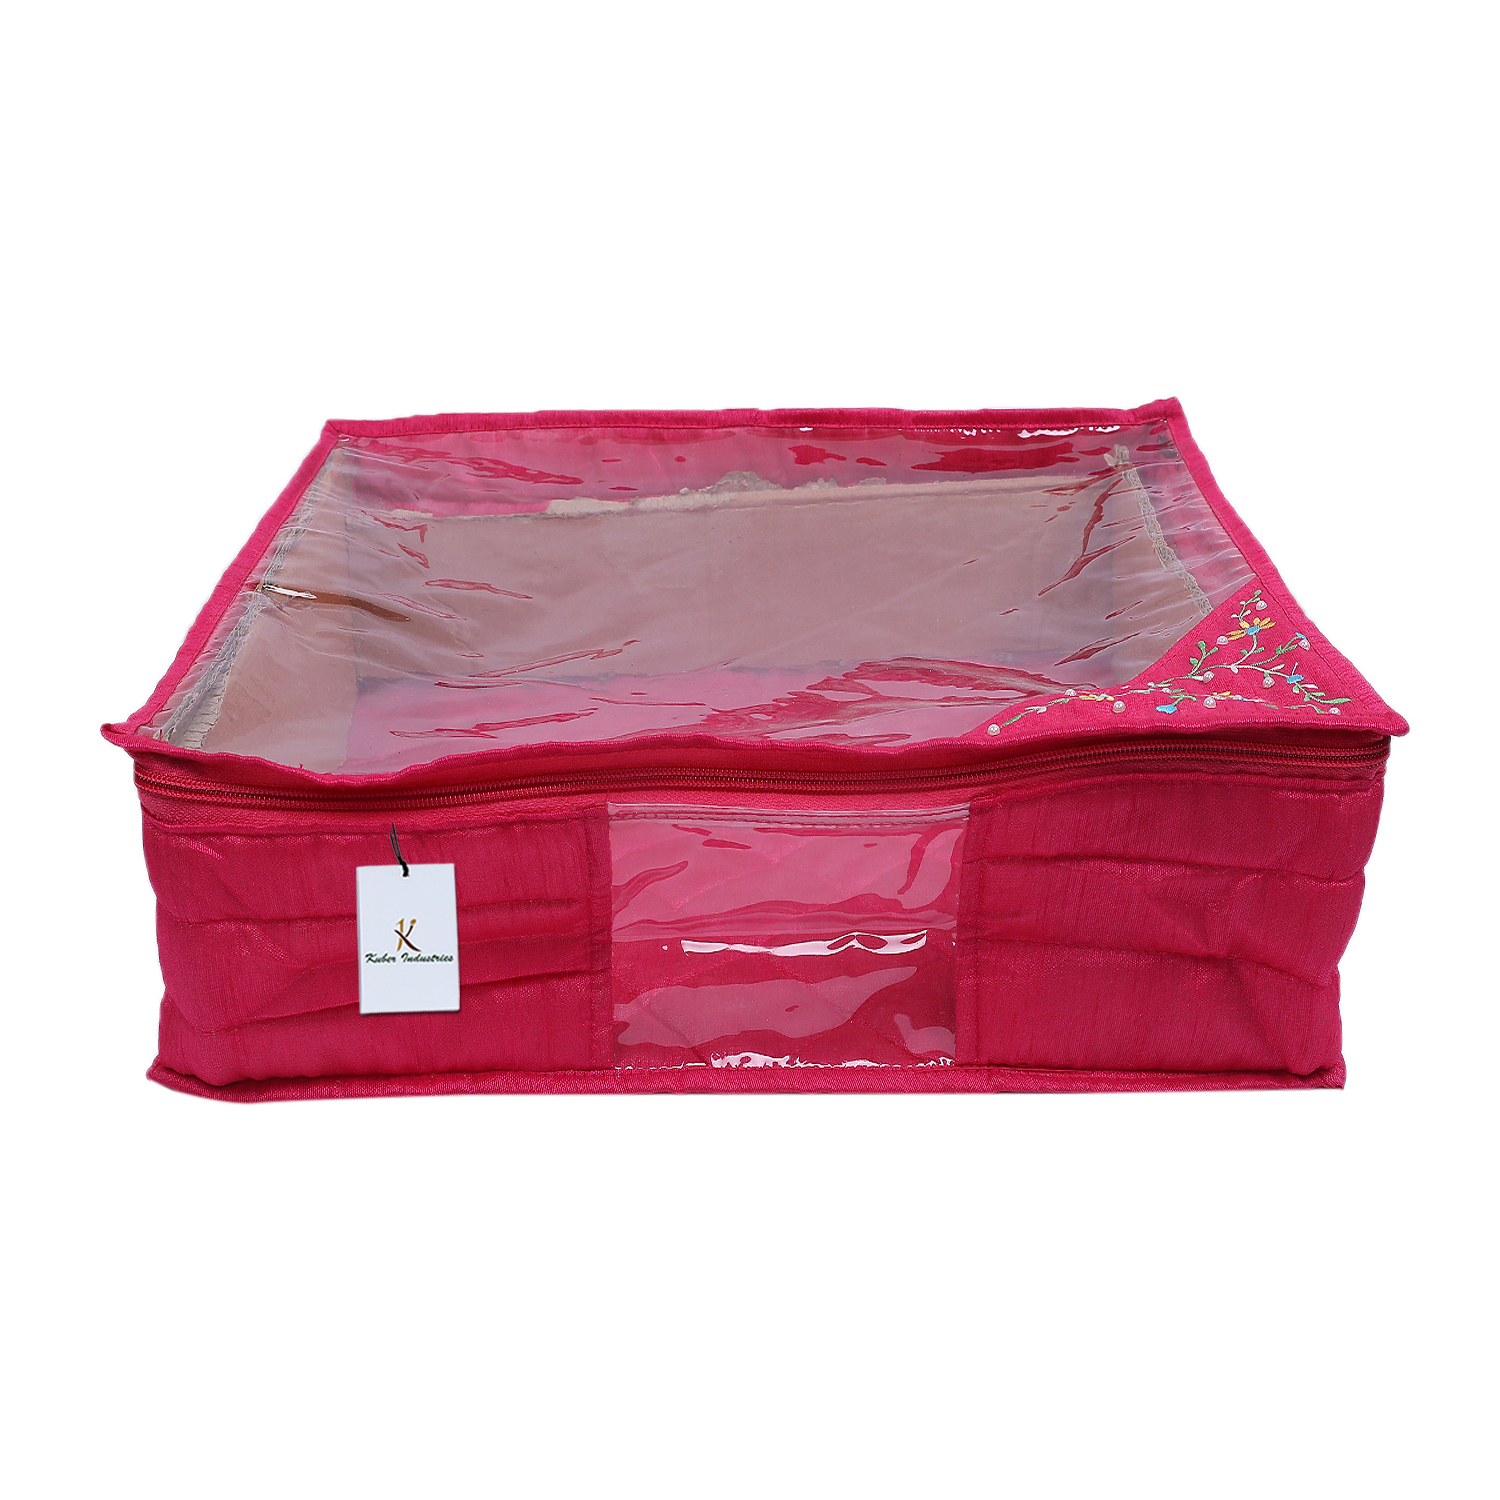 Kuber Industries 3 layered Quilted Silk Saree Cover (Pink) -CTLTC10627